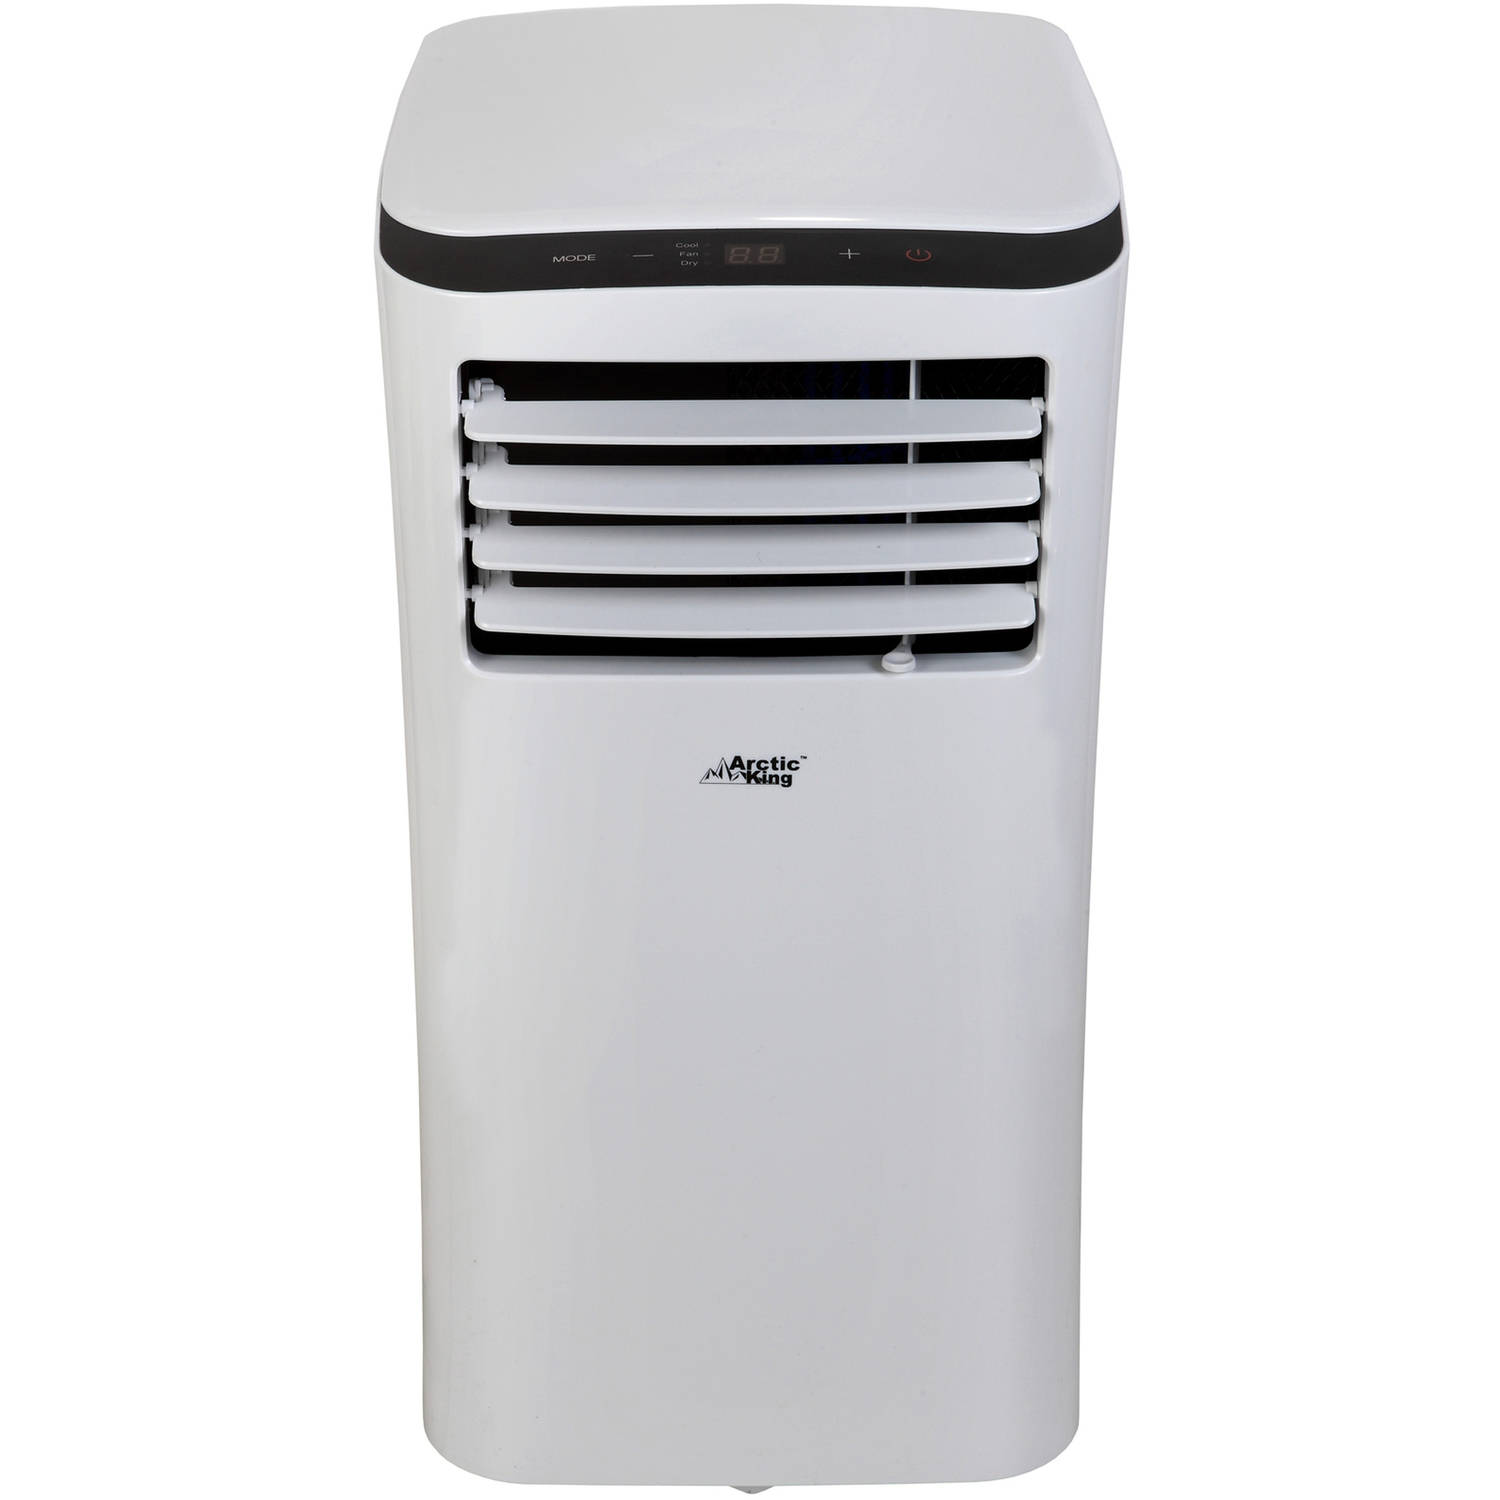 Arctic King WPPH-06CR5 6,000Btu Remote Control Portable Air Conditioner, White